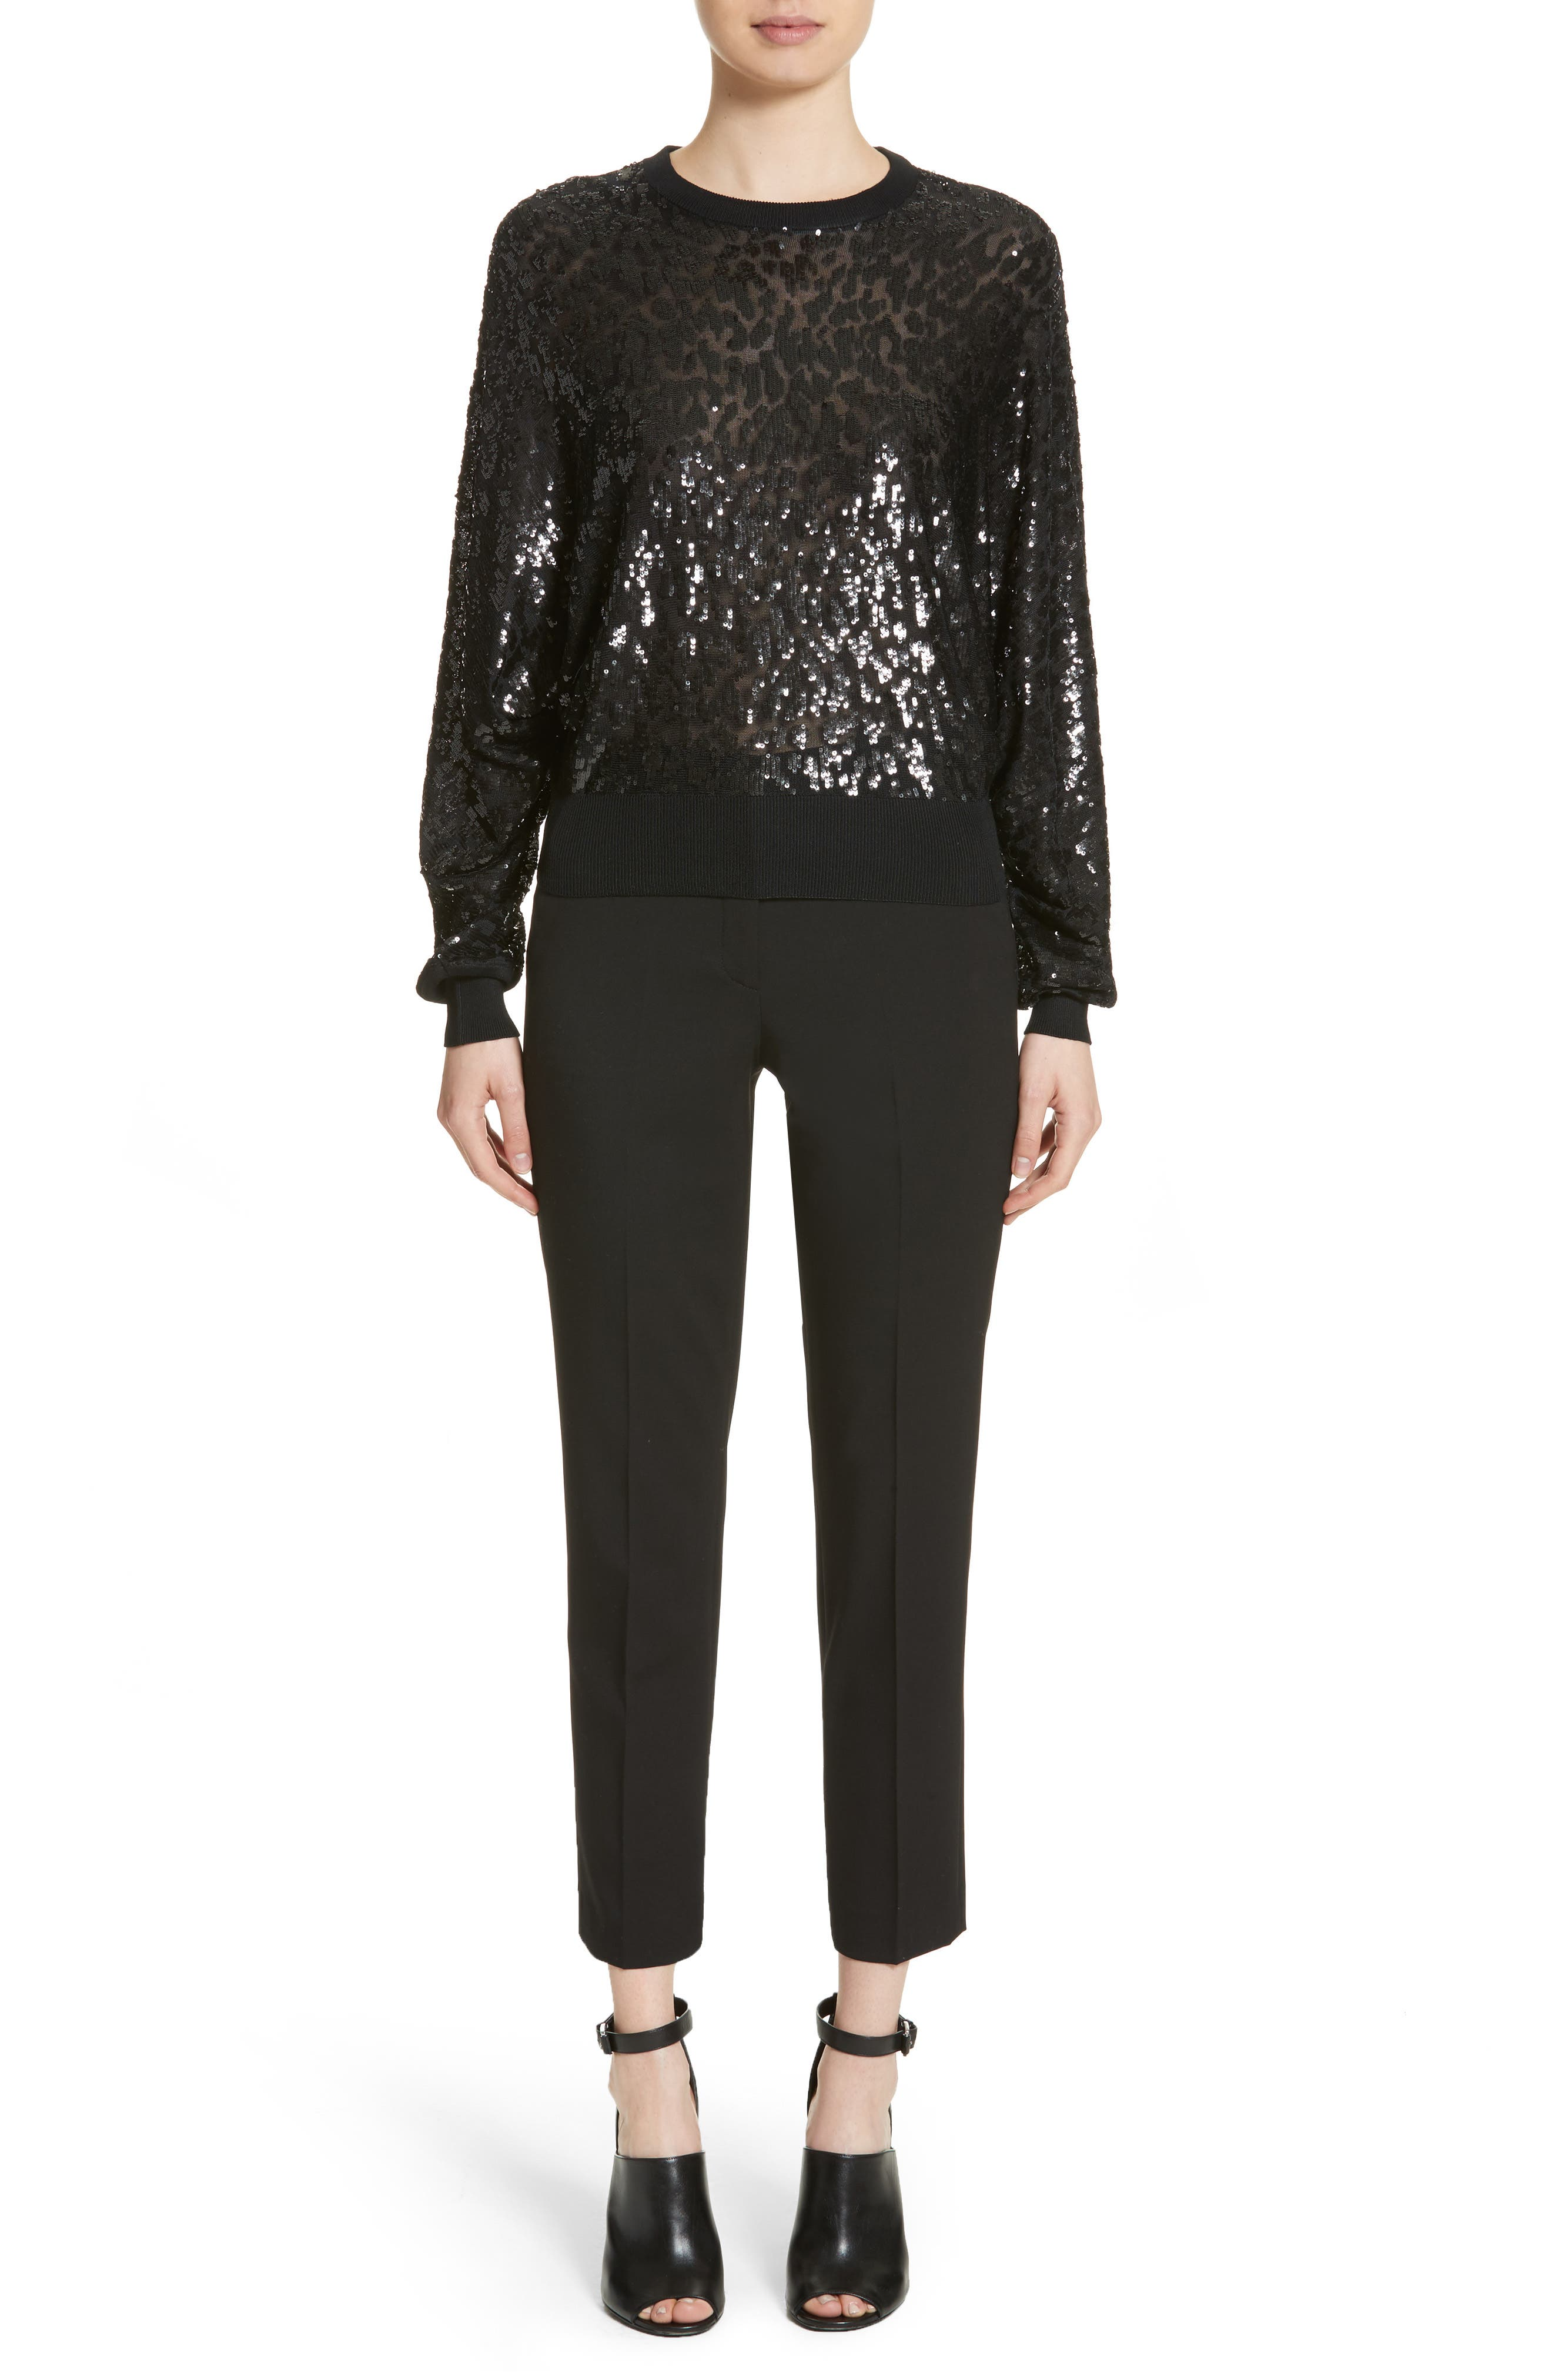 Sequined Tulle Leopard Sweater,                             Alternate thumbnail 8, color,                             Black/ Black